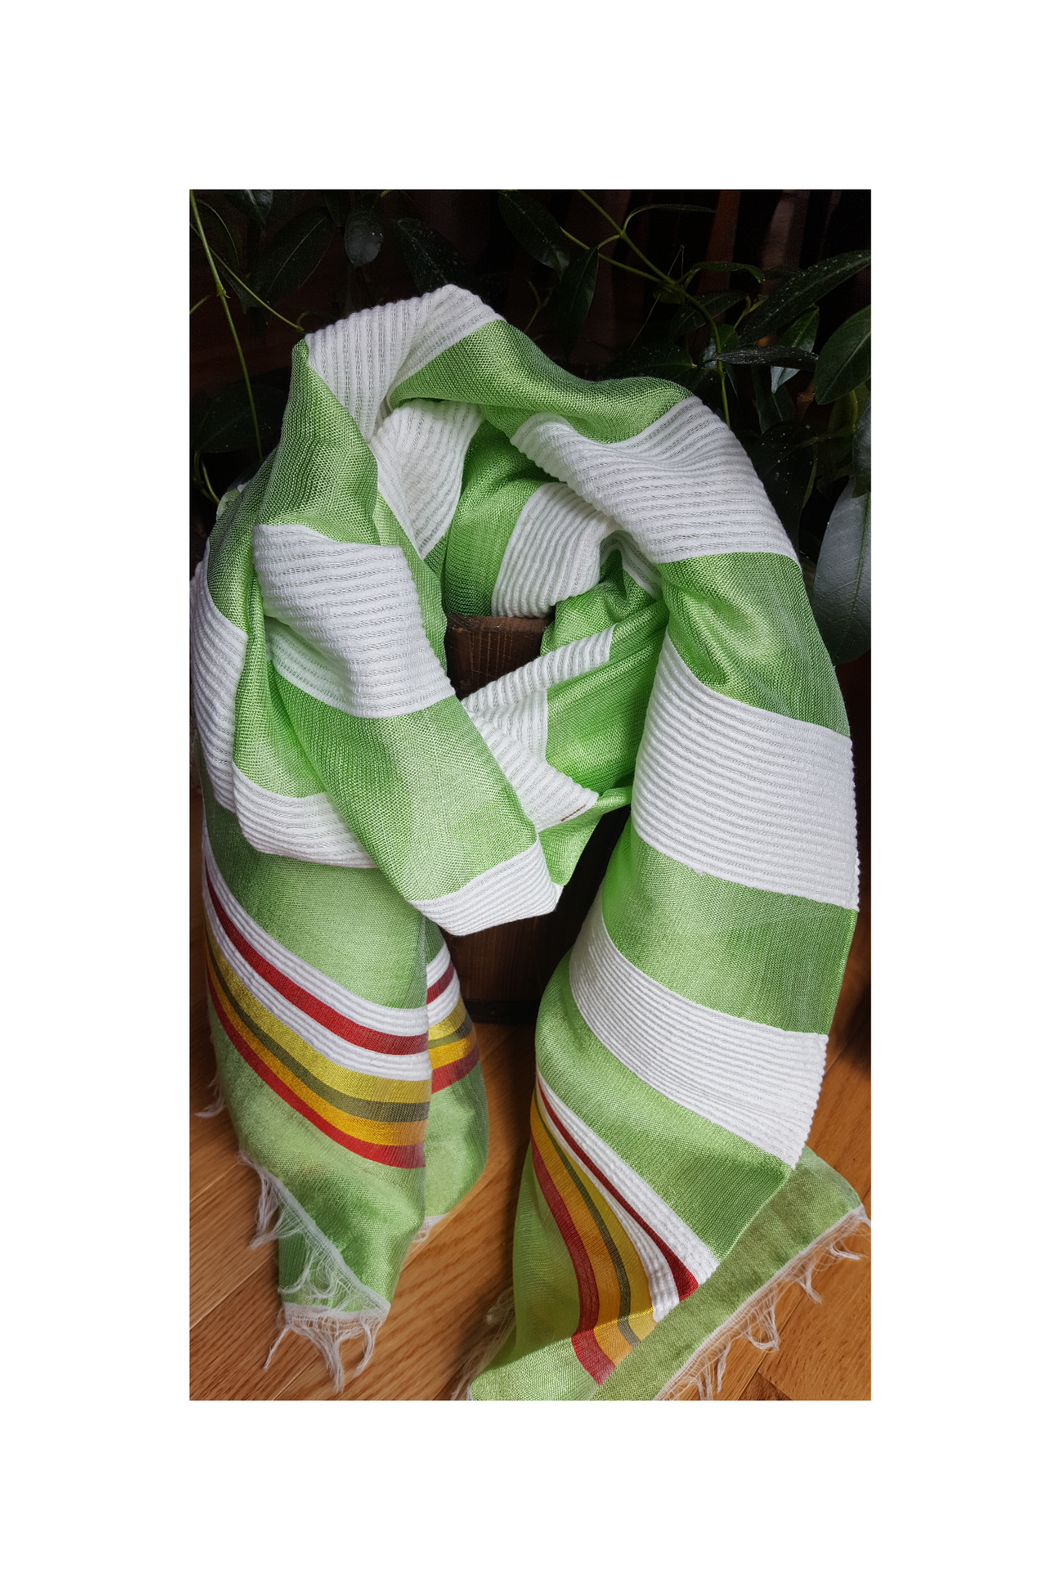 Handwoven Cotton Scarf - Lime Green and White Stripes